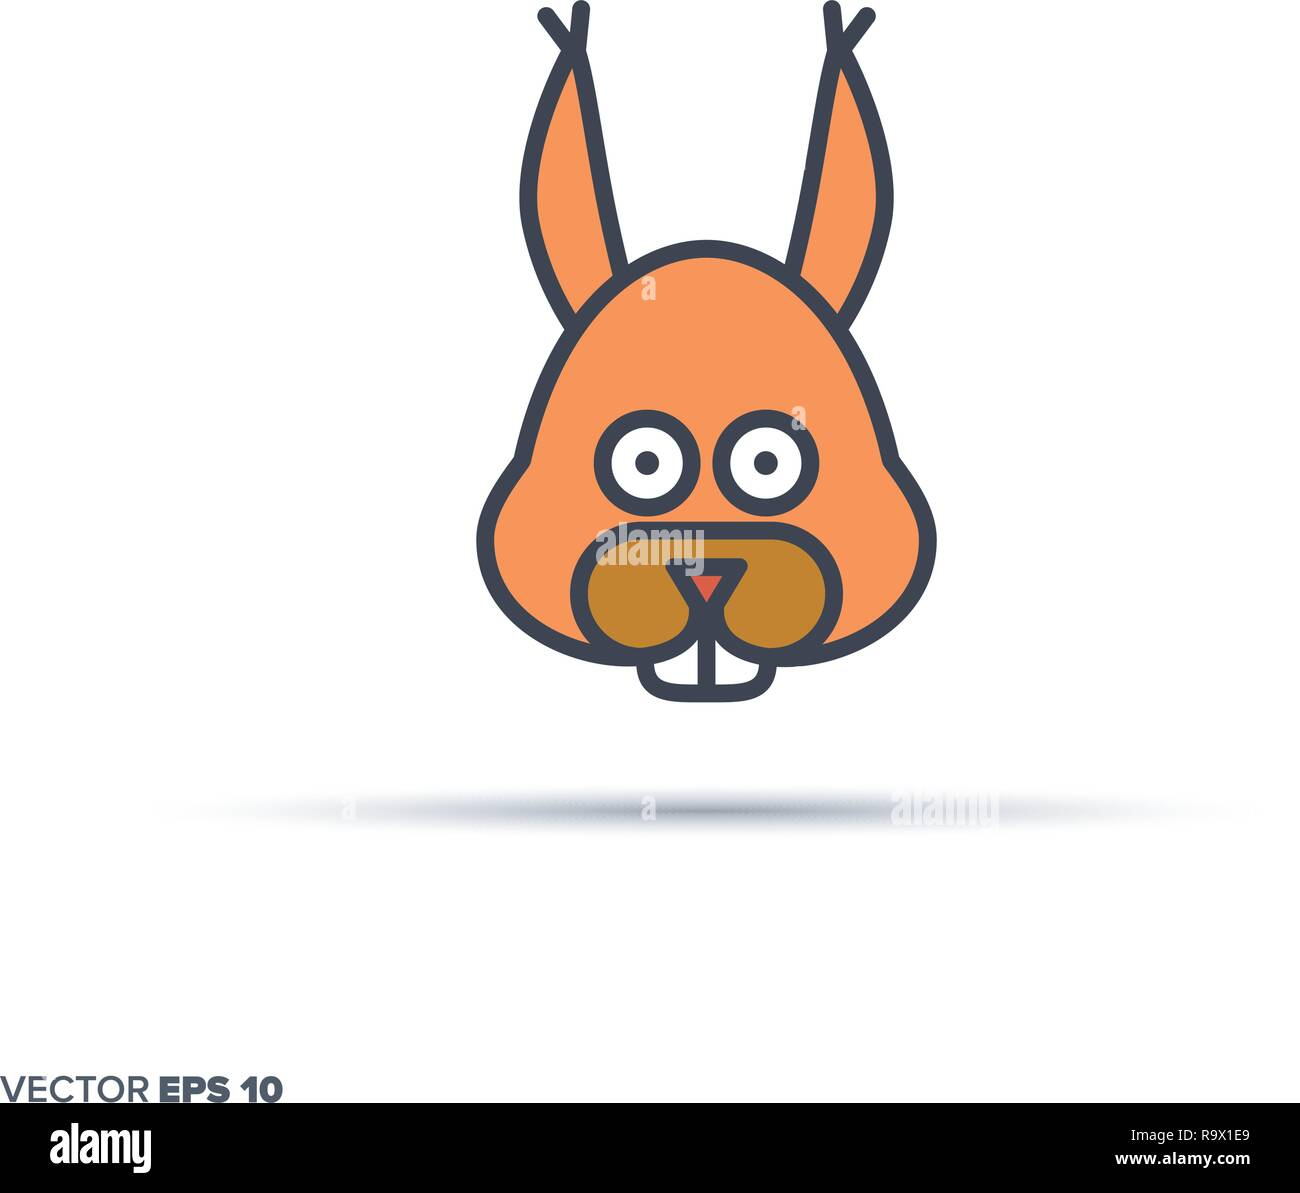 Cute squirrel face outline vector icon with color fill. Funny animal illustration. - Stock Vector